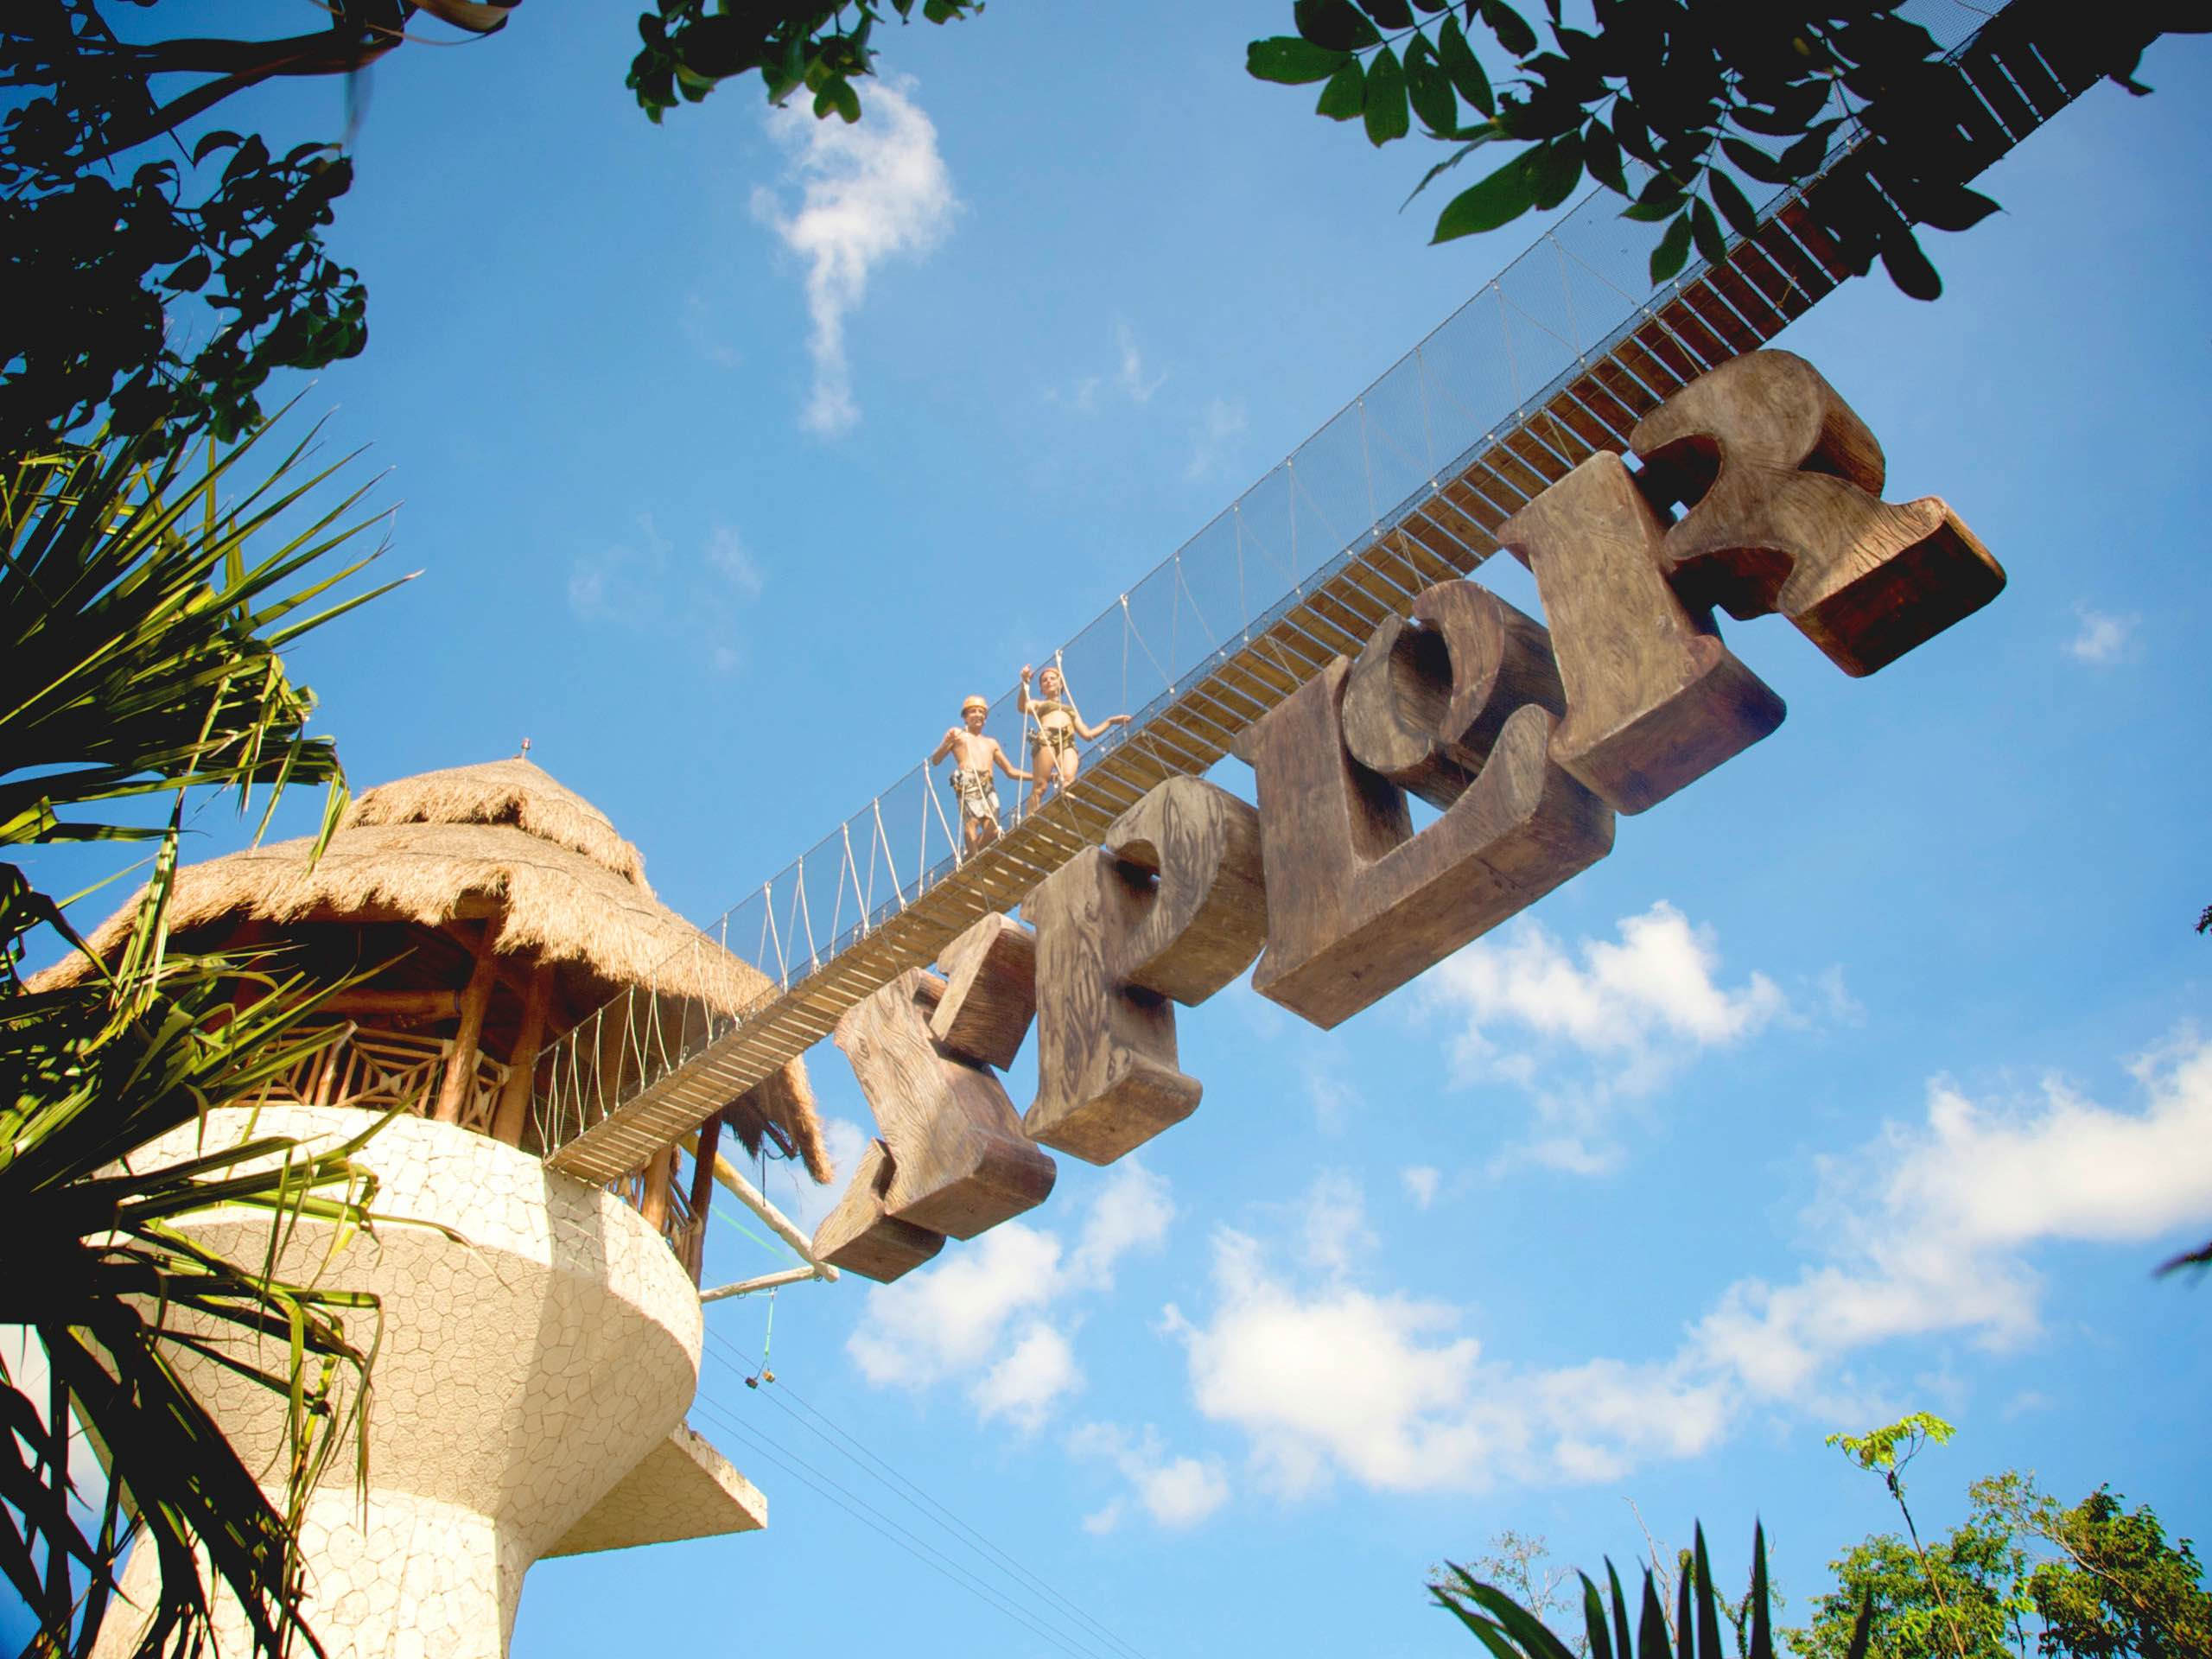 Tour Xplor  - Last Minute Tours in Cancún and Riviera Maya